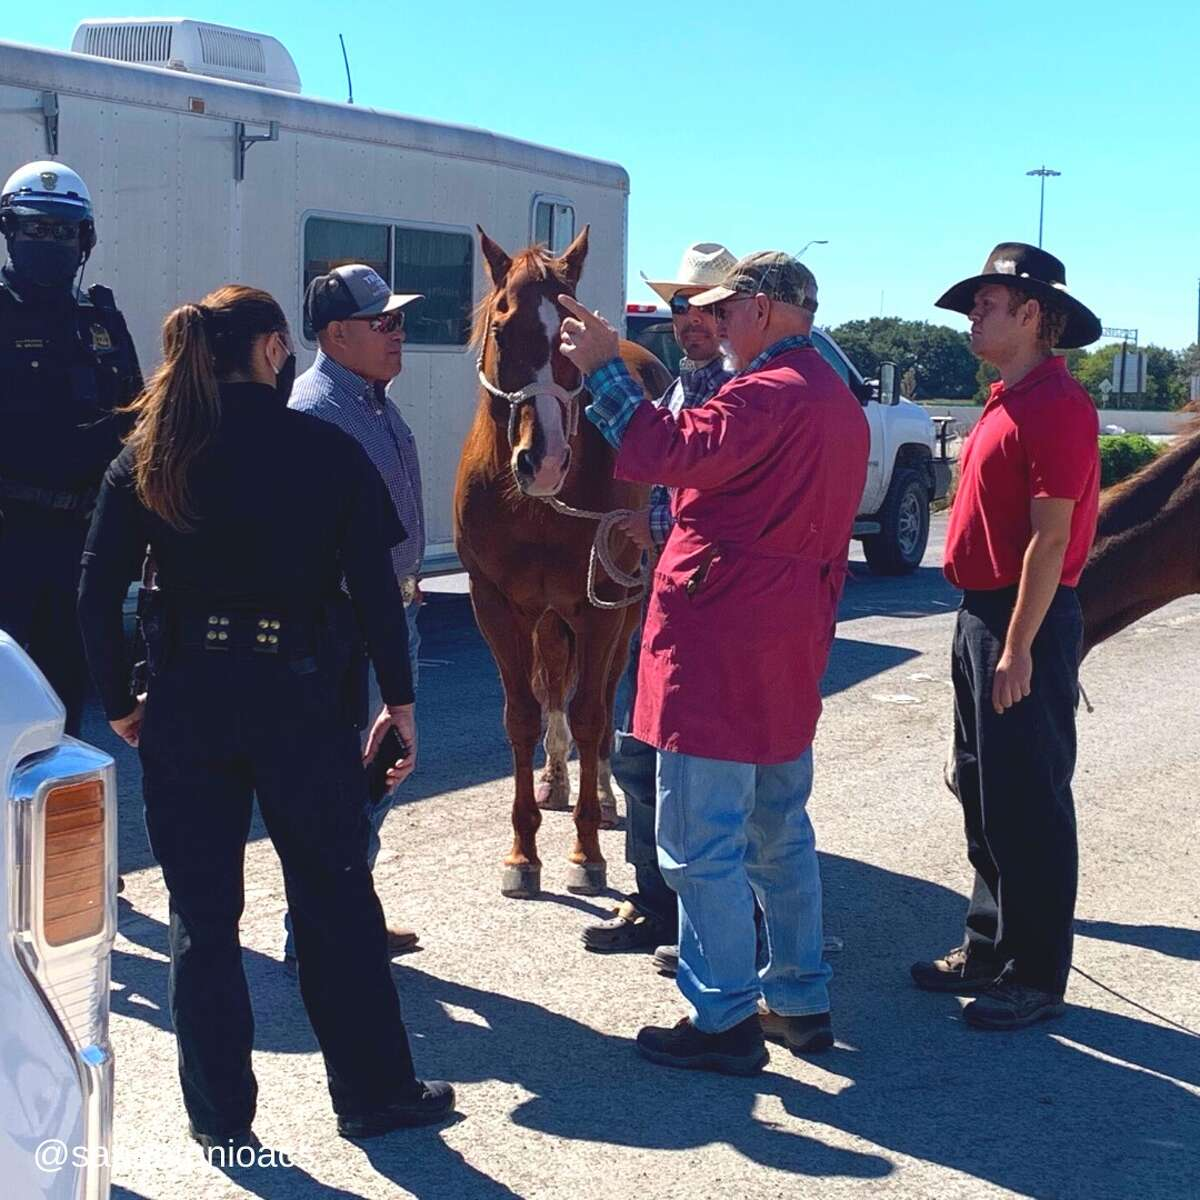 The city's animal care services rescued two horses that were slammed by an 18-wheeler while in a trailer they were being transported in.